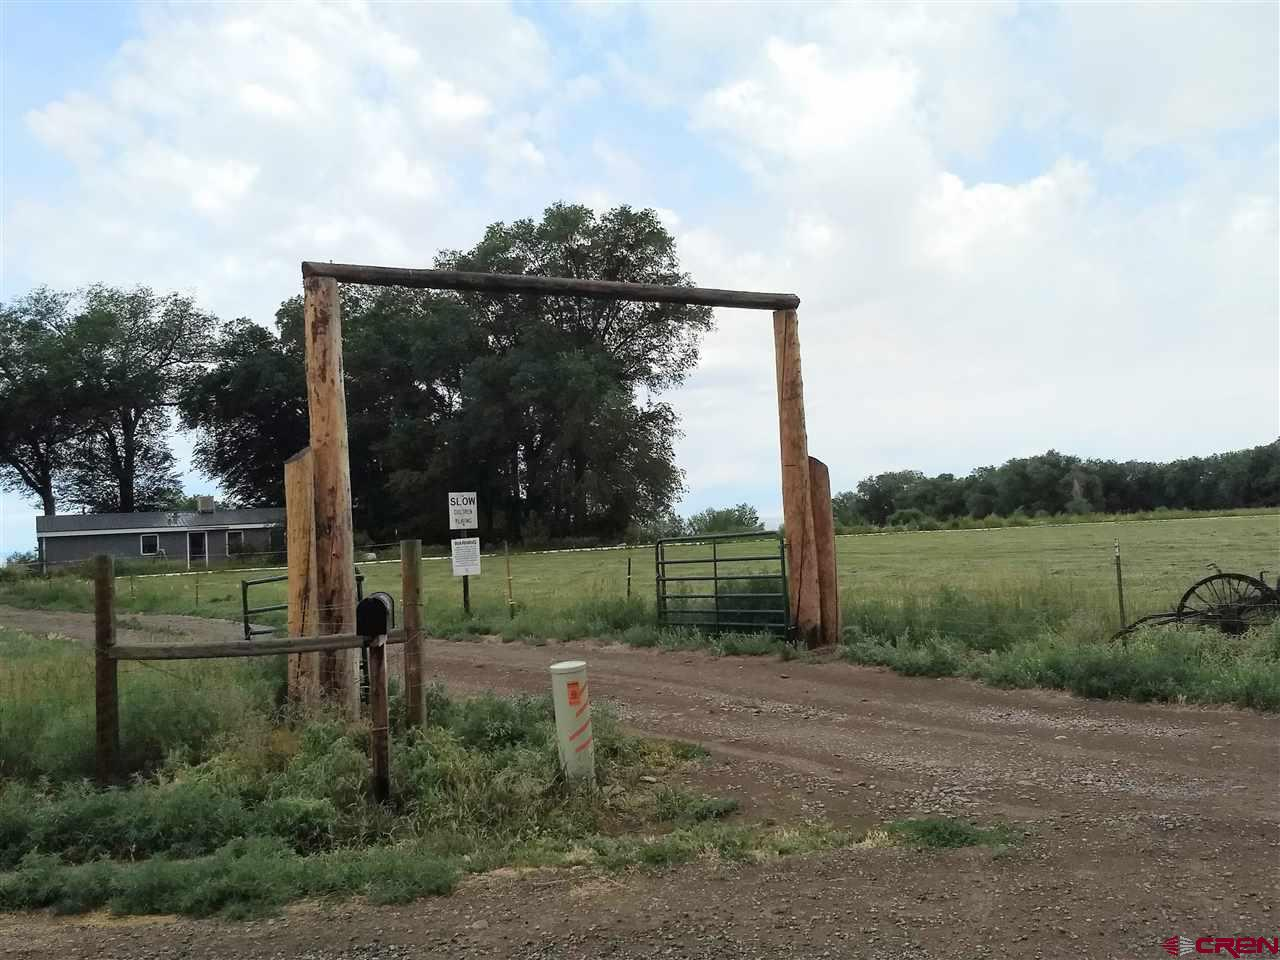 40 acres -22.5 shares UVWA irrigation water -1988 Titan double-wide mobile home. 3/2 with approx 1400 Sqft. (26X56) -30X40 square steel garage with full foam insulation, double doors both ends, concrete floor, full electric, parts room, and upper level office and storage area. -40x40 steel quonset hut with concrete floor, full electric, and double doors. -Property fenced on all 4 sides. Septic recently pumped - 1250 gallon tank -service receipt available. -One half mineral right included... -Approx 22 acres farmable area, with remainder hilly pasture/marshy area. -Includes small pond -Wonderful views of Grand Mesa, Mount Lamborn, and Delta and Uncompagre valley and mountains.